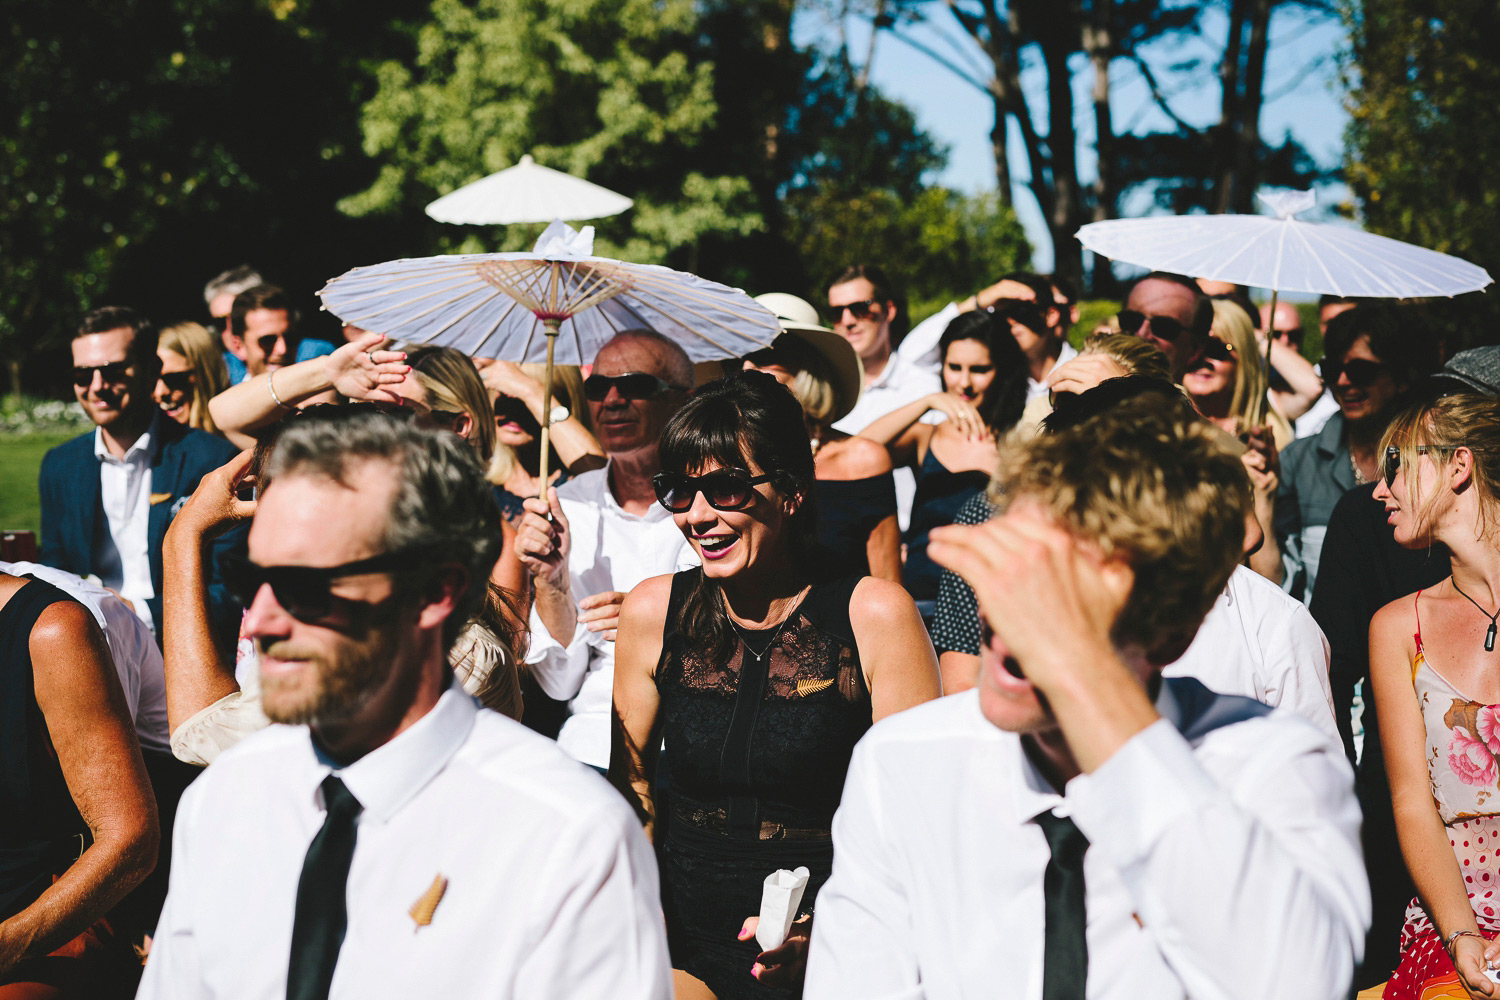 cape-town-wedding-photographer-western-cape-constansia-camilla-charlie-ray52.jpg